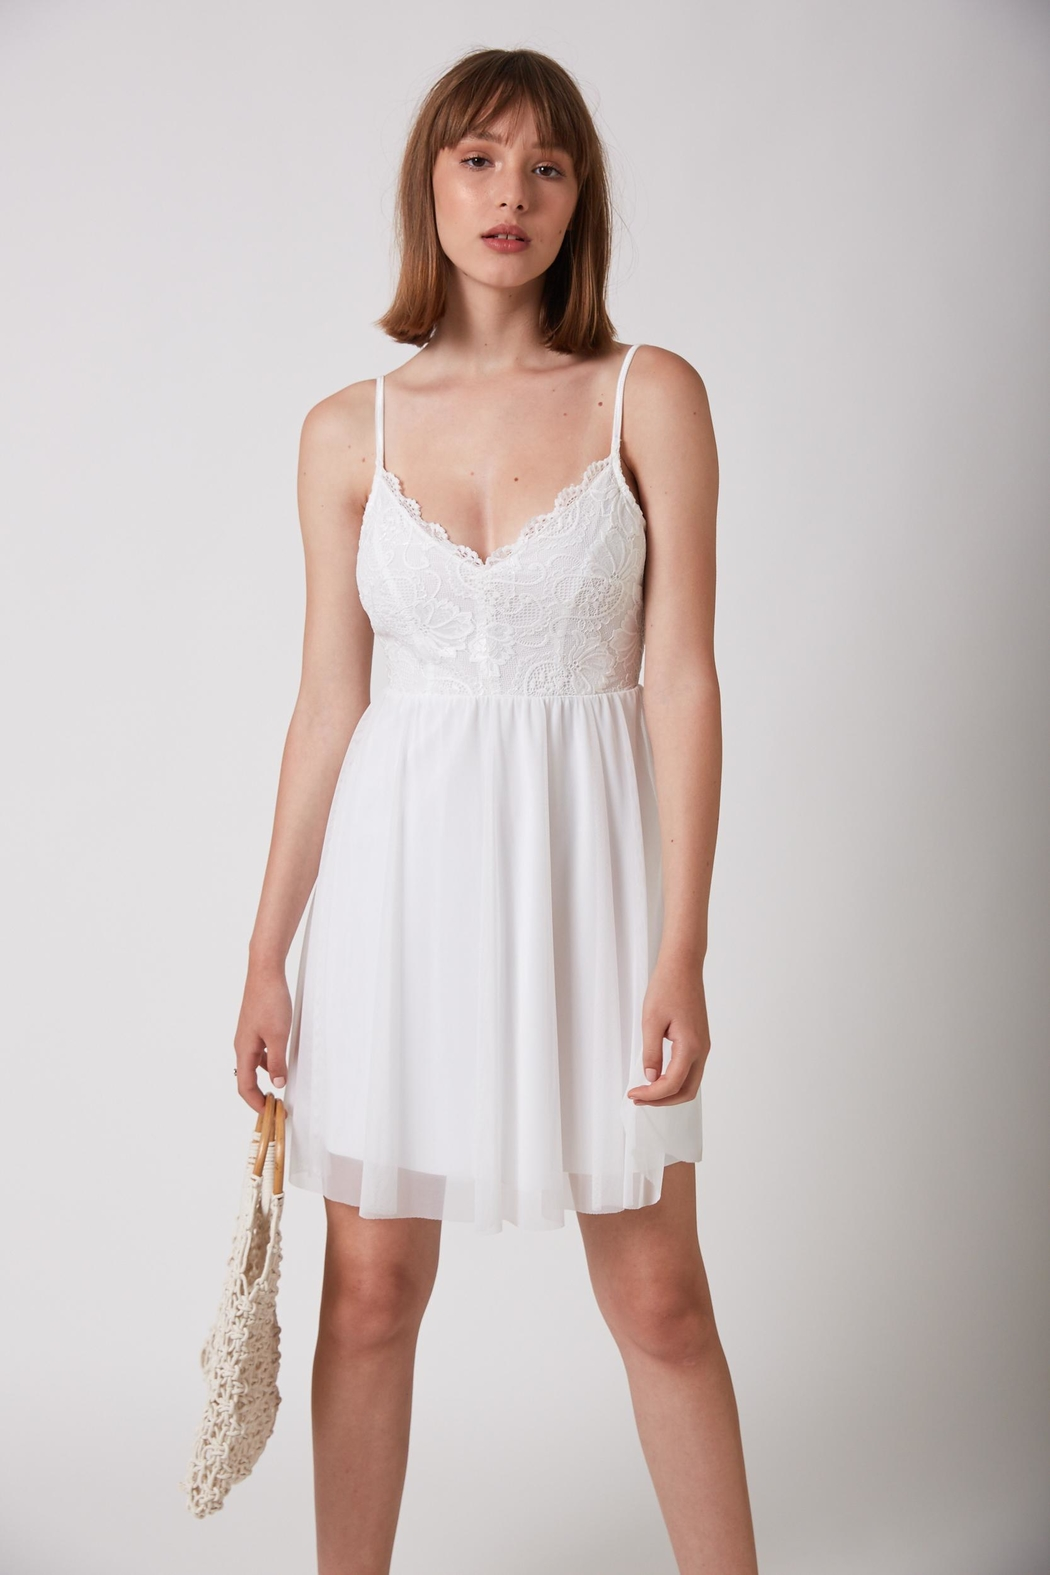 ShuShine White Mini Dress - Main Image